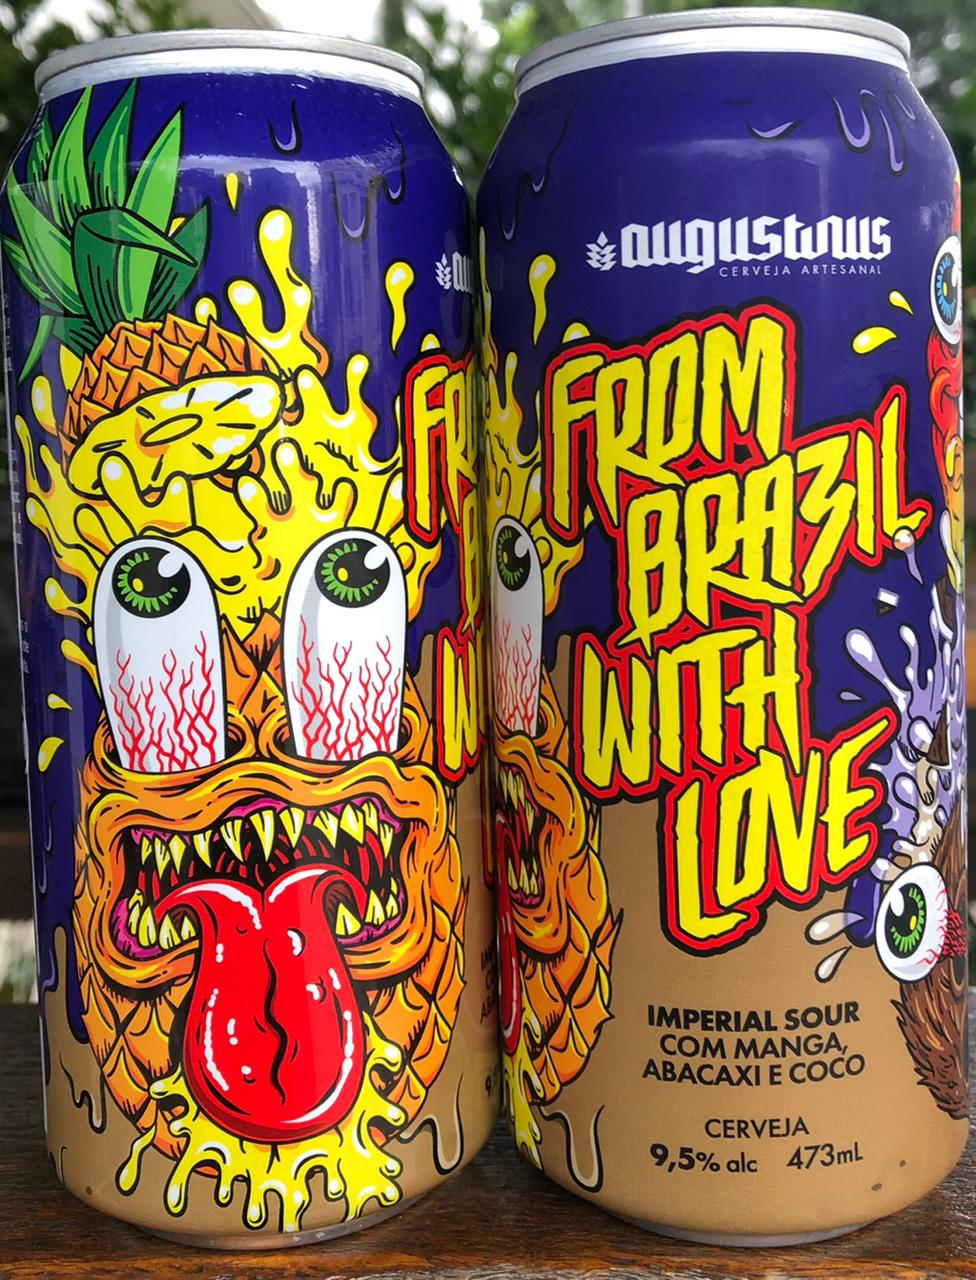 Augustinus From Brazil With Love Lata 473ml Imperial Sour com Manga, Abacaxi e Coco